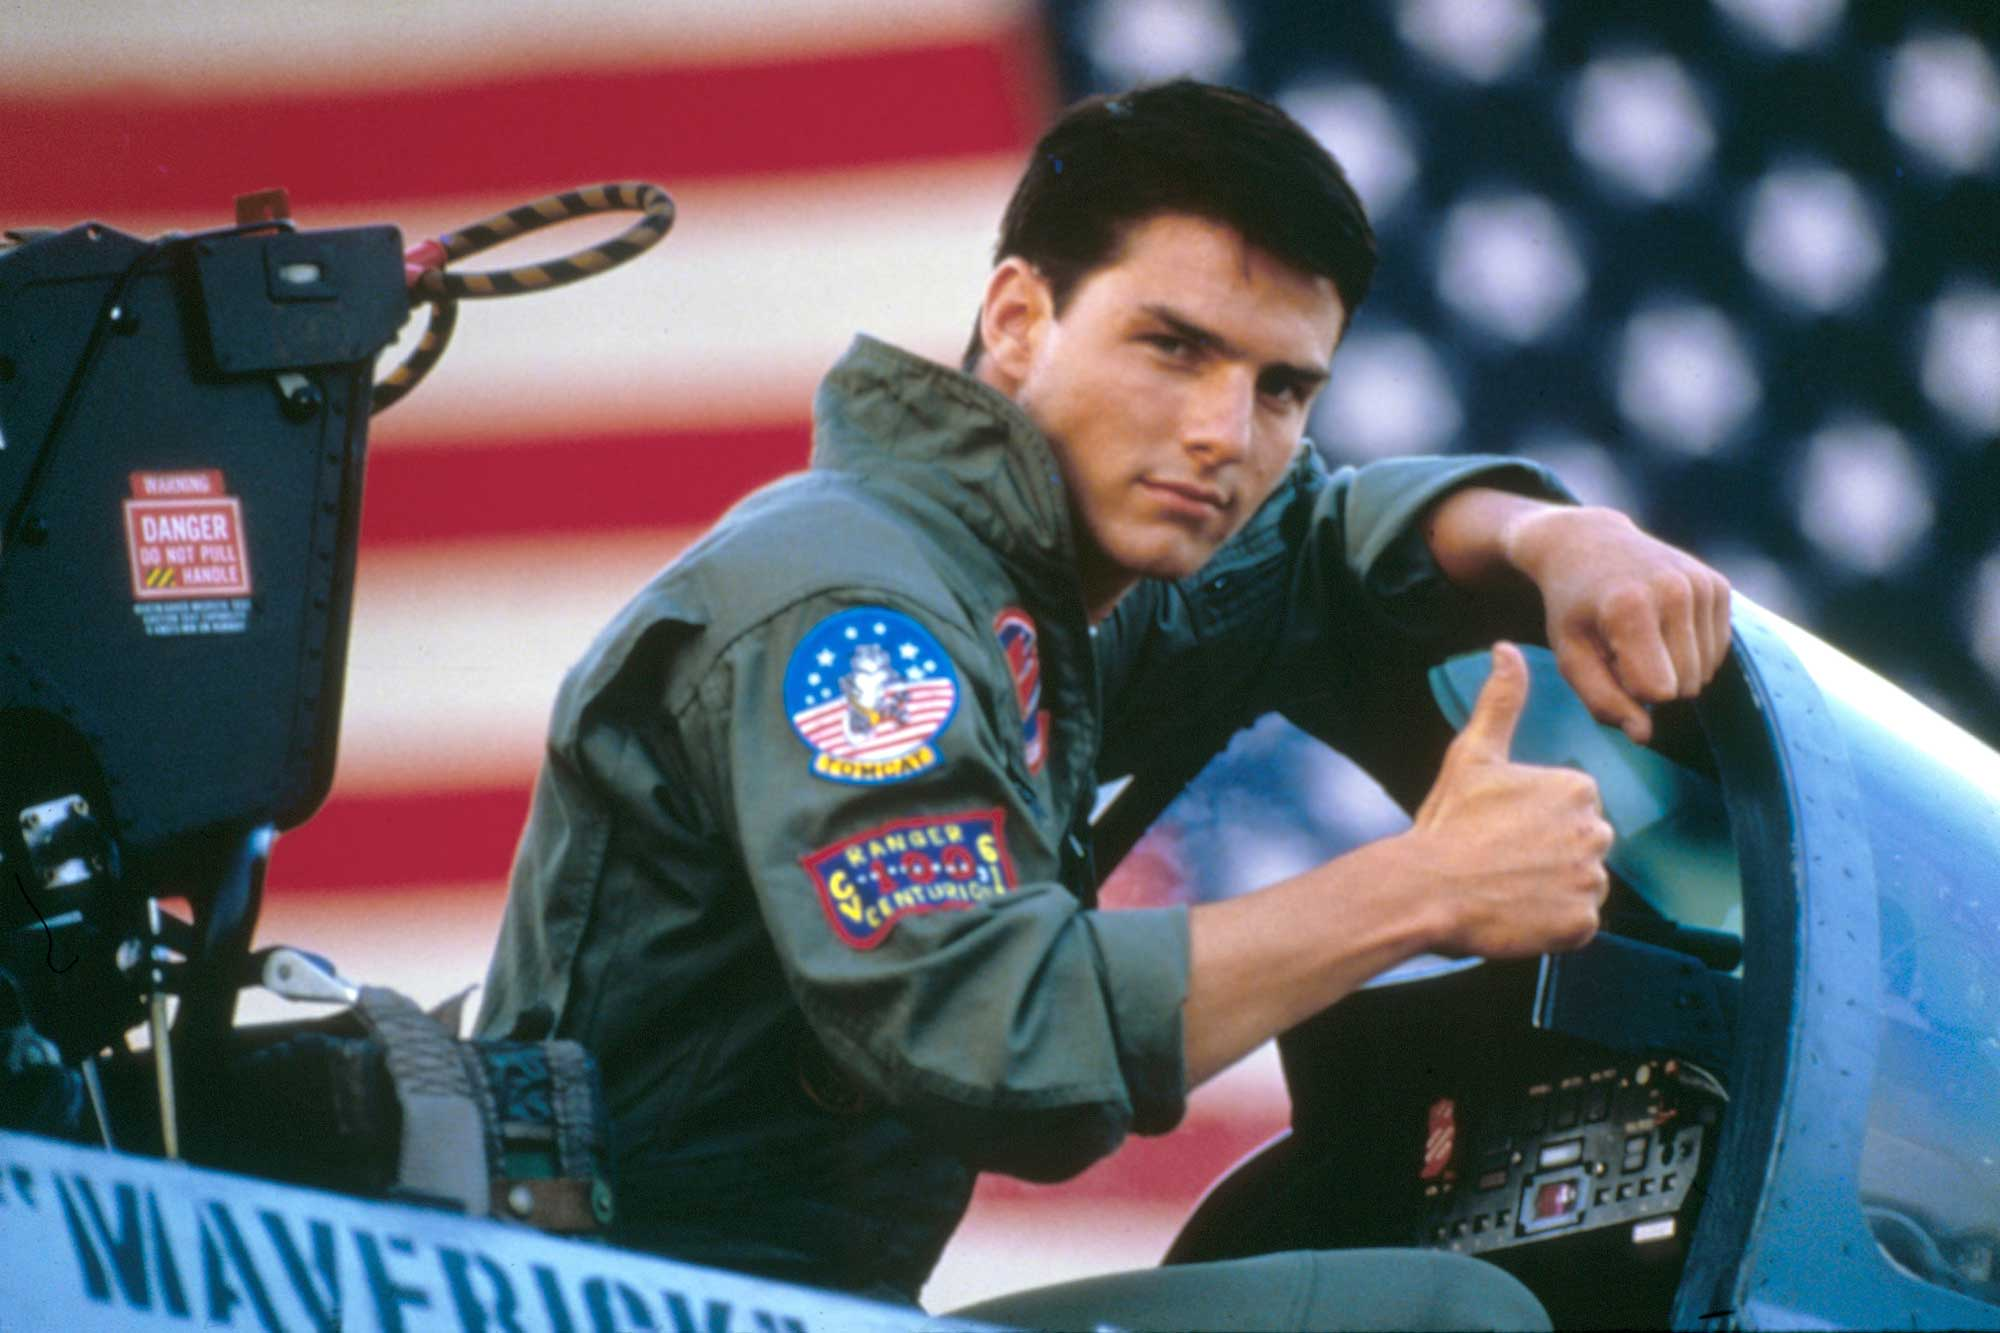 Tom Cruise's jacket in the 'Top Gun' sequel shows just how crucial China is to the US film industry